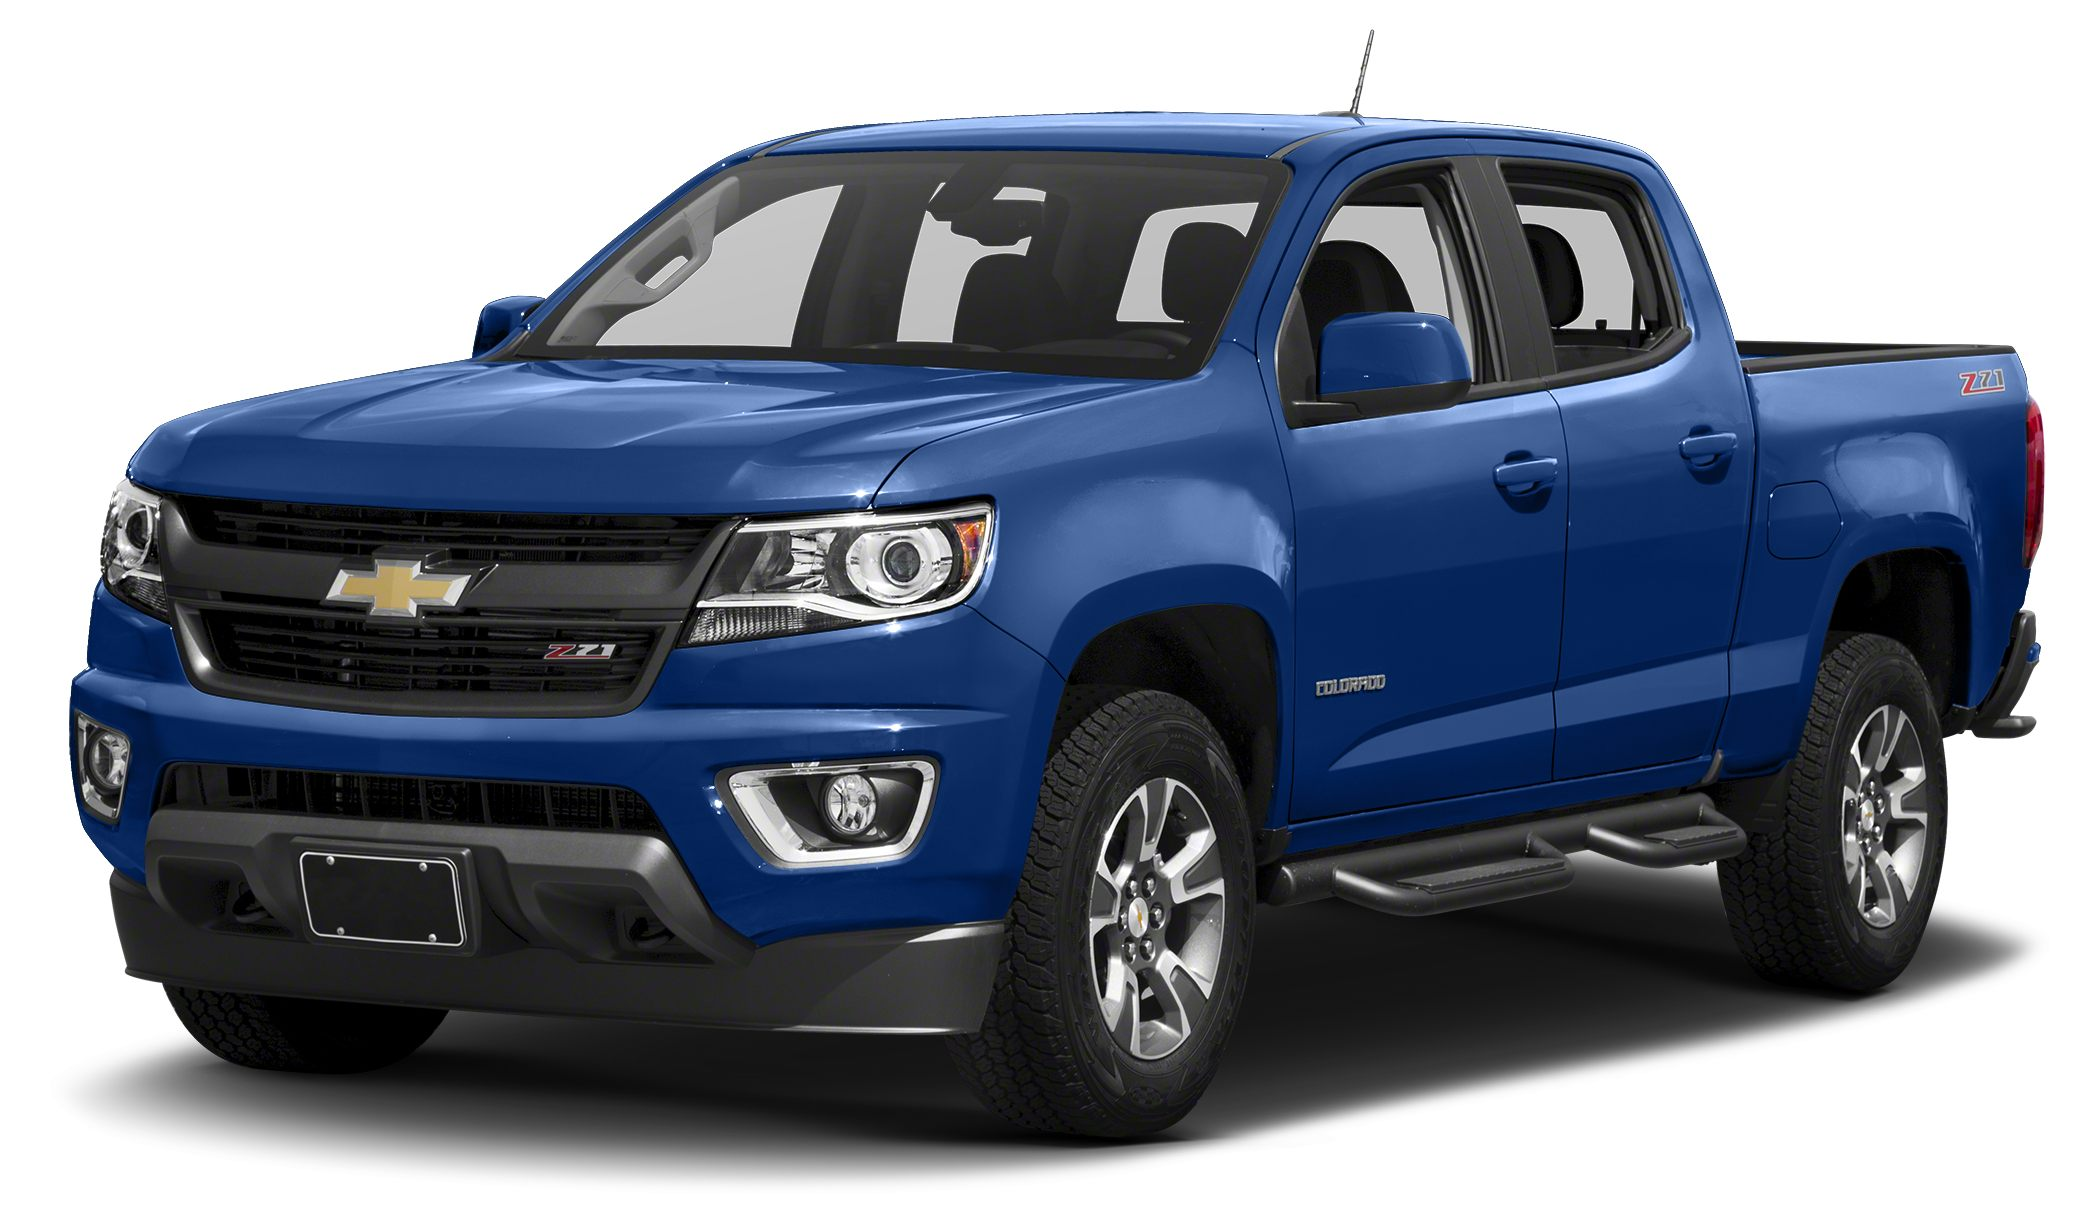 2016 Chevrolet Colorado Z71 4 Wheel Drive Z71 Package Are you still driving around that old thin